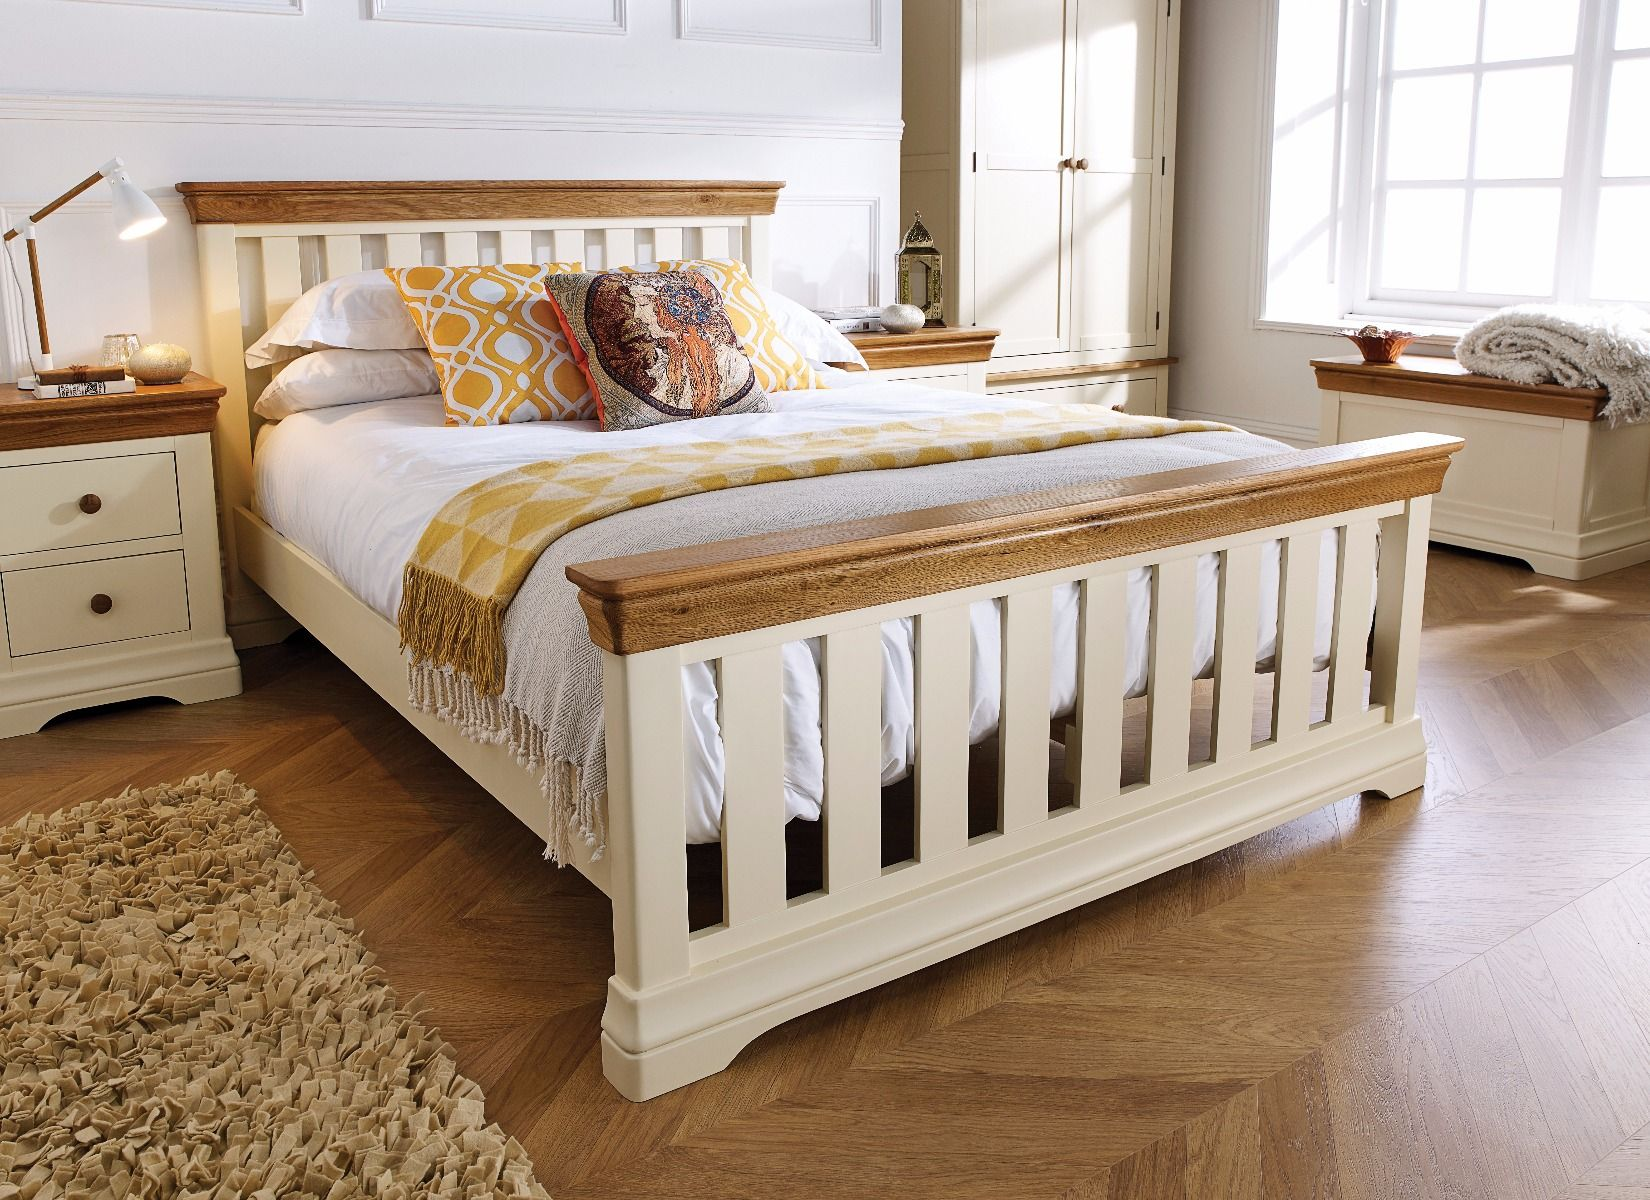 4ft 6 Bed Farmhouse Country Oak Cream Painted Slatted 4ft 6 Inches Double Bed